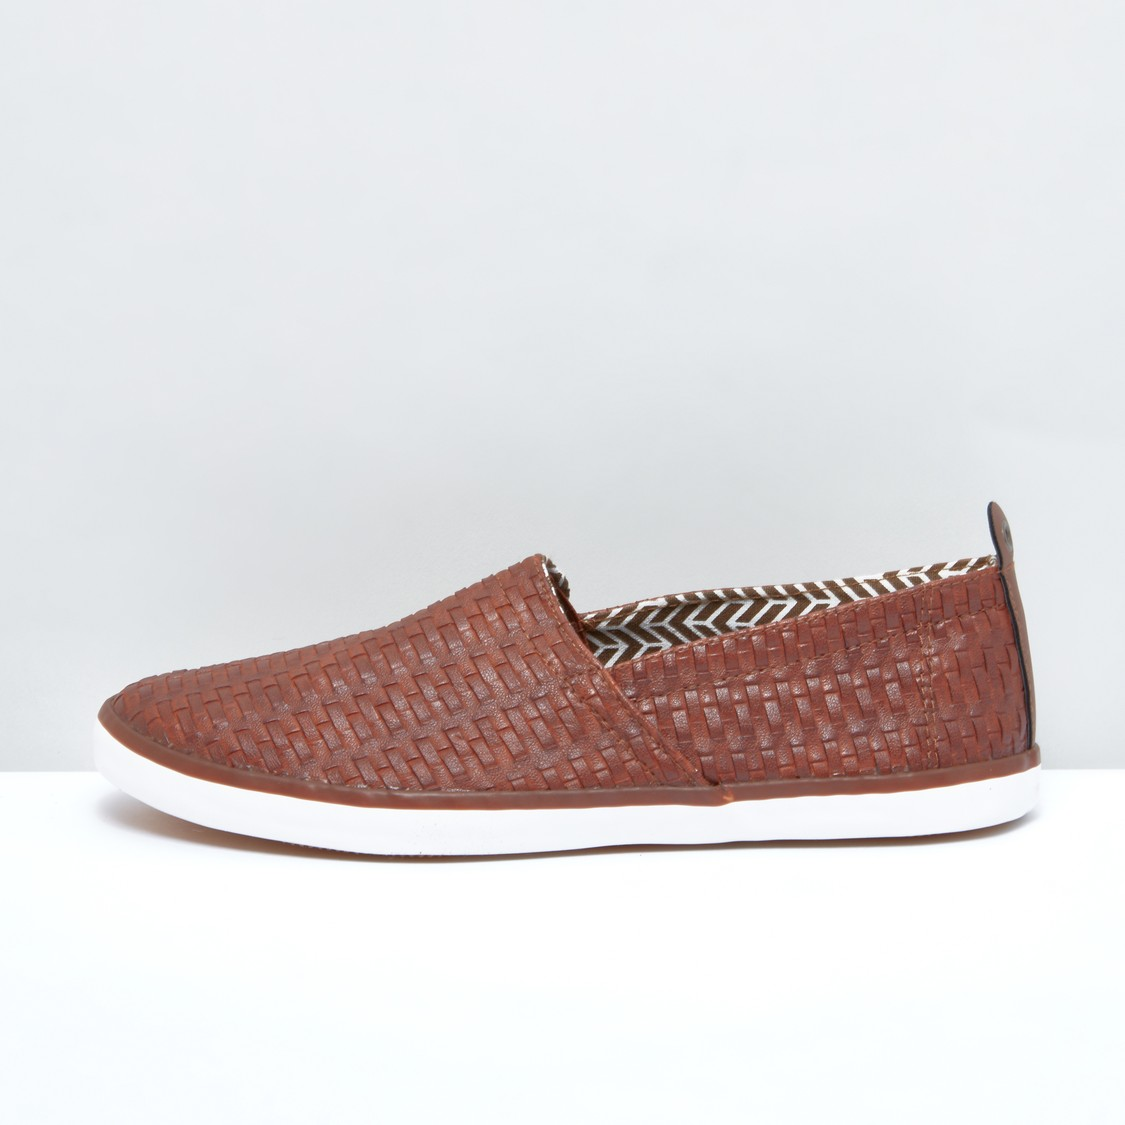 Textured Slip-On Shoes with Eyelet Detail Pull Tab